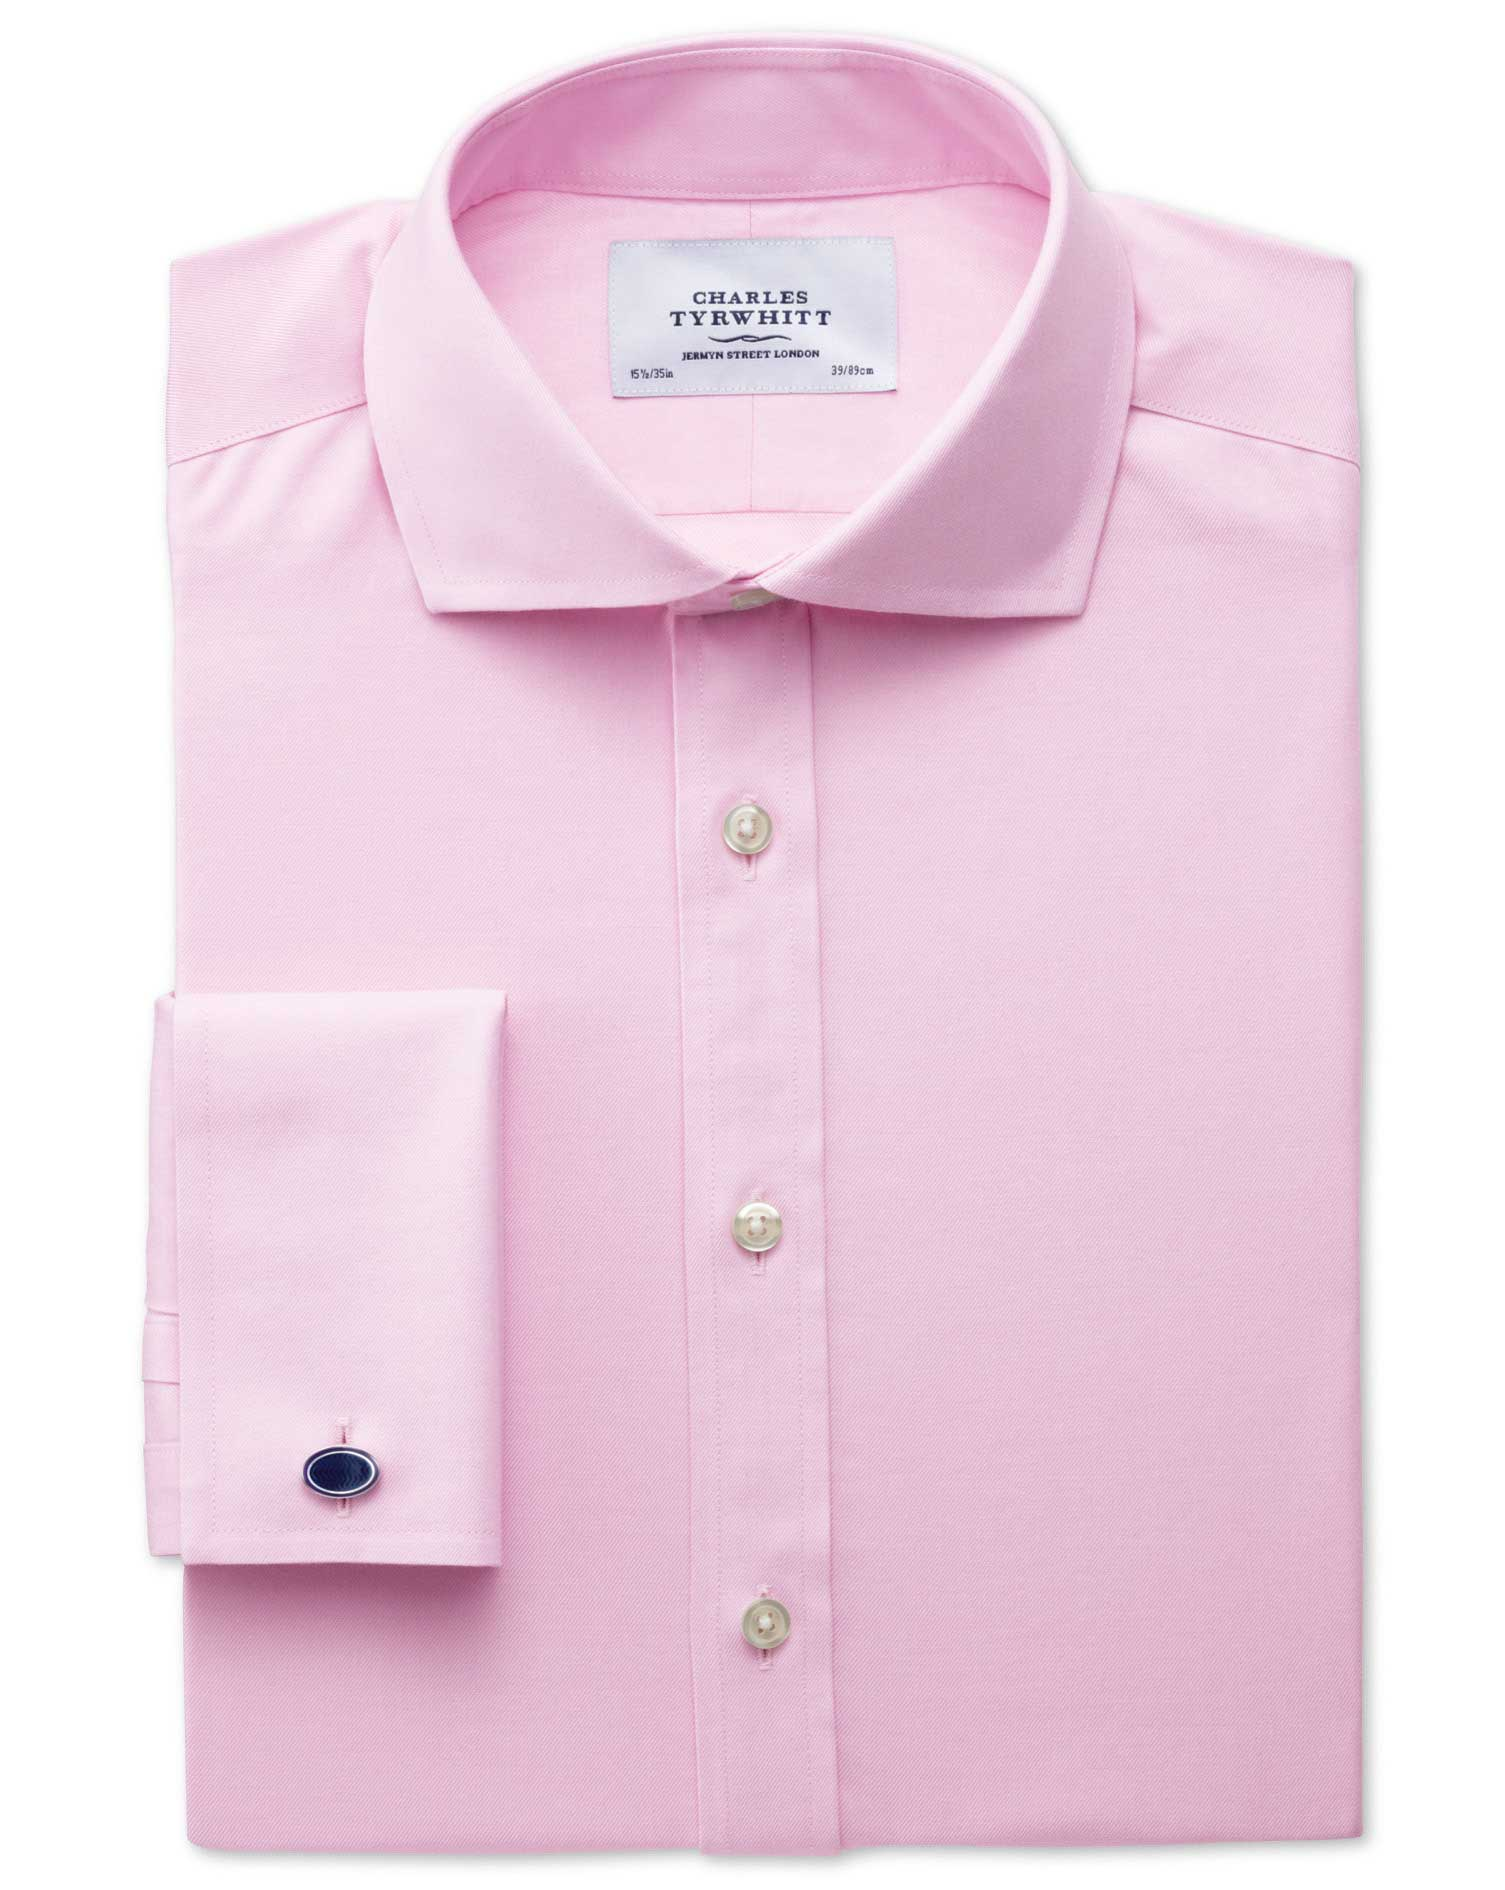 Classic Fit Cutaway Non-Iron Twill Pink Cotton Formal Shirt Single Cuff Size 16/38 by Charles Tyrwhi